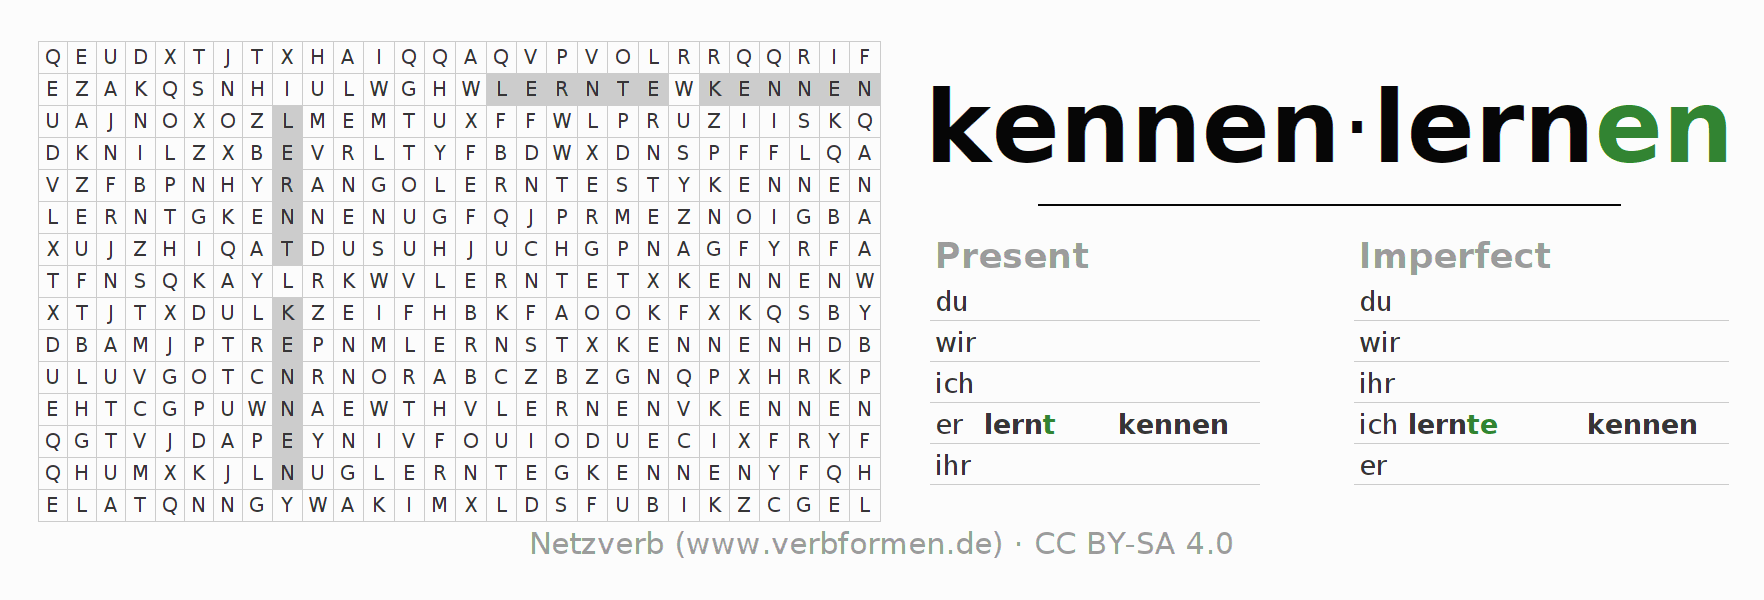 Kennenlernen conjugation german